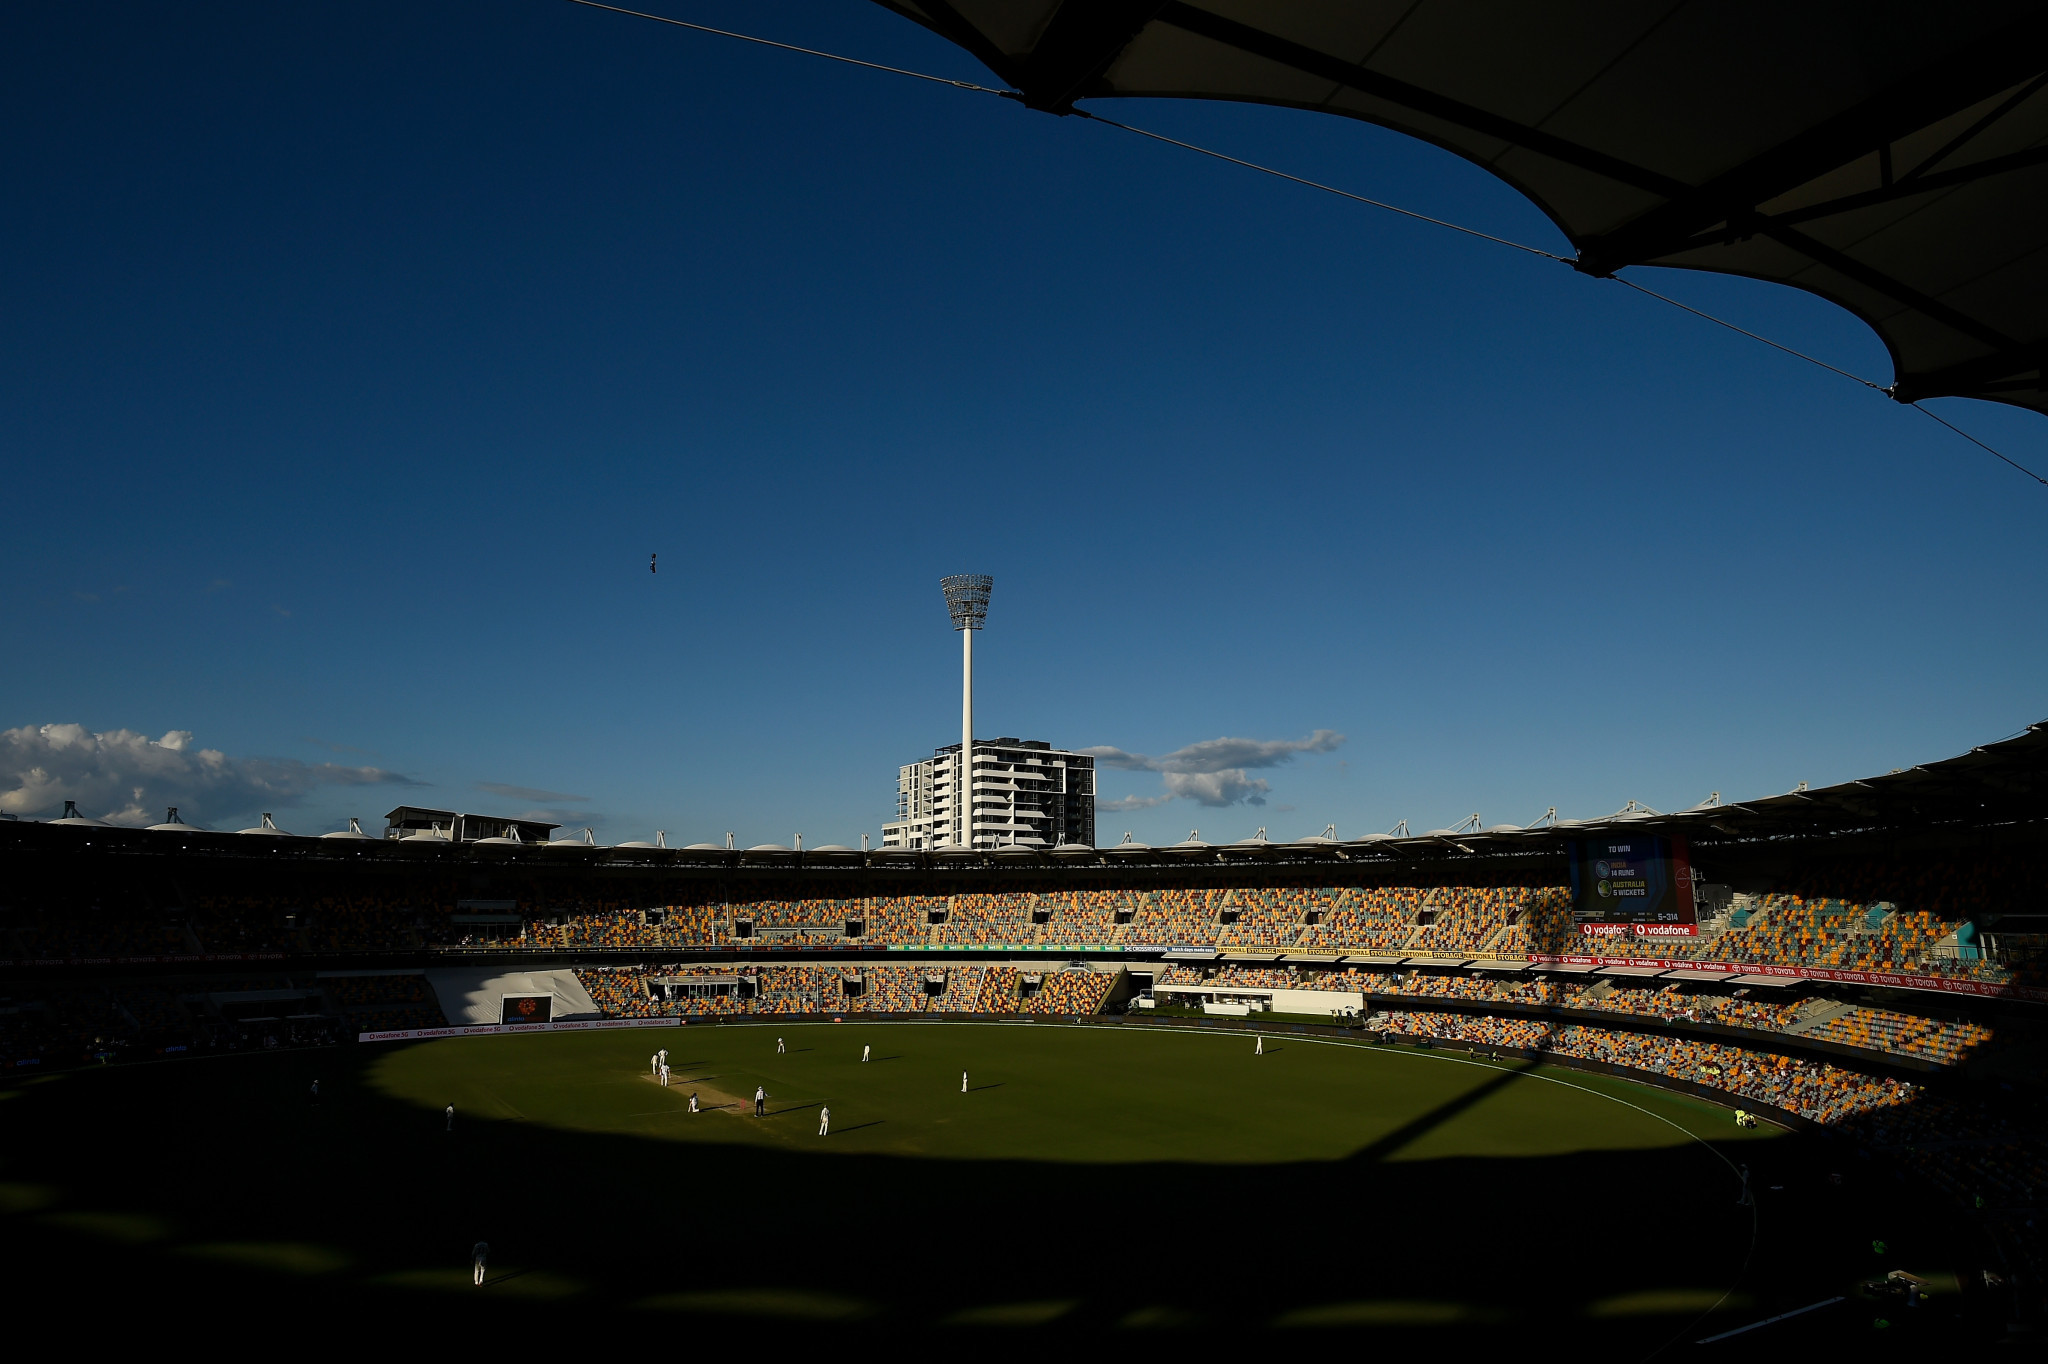 Rebuilt Gabba proposed as focal venue of Brisbane 2032